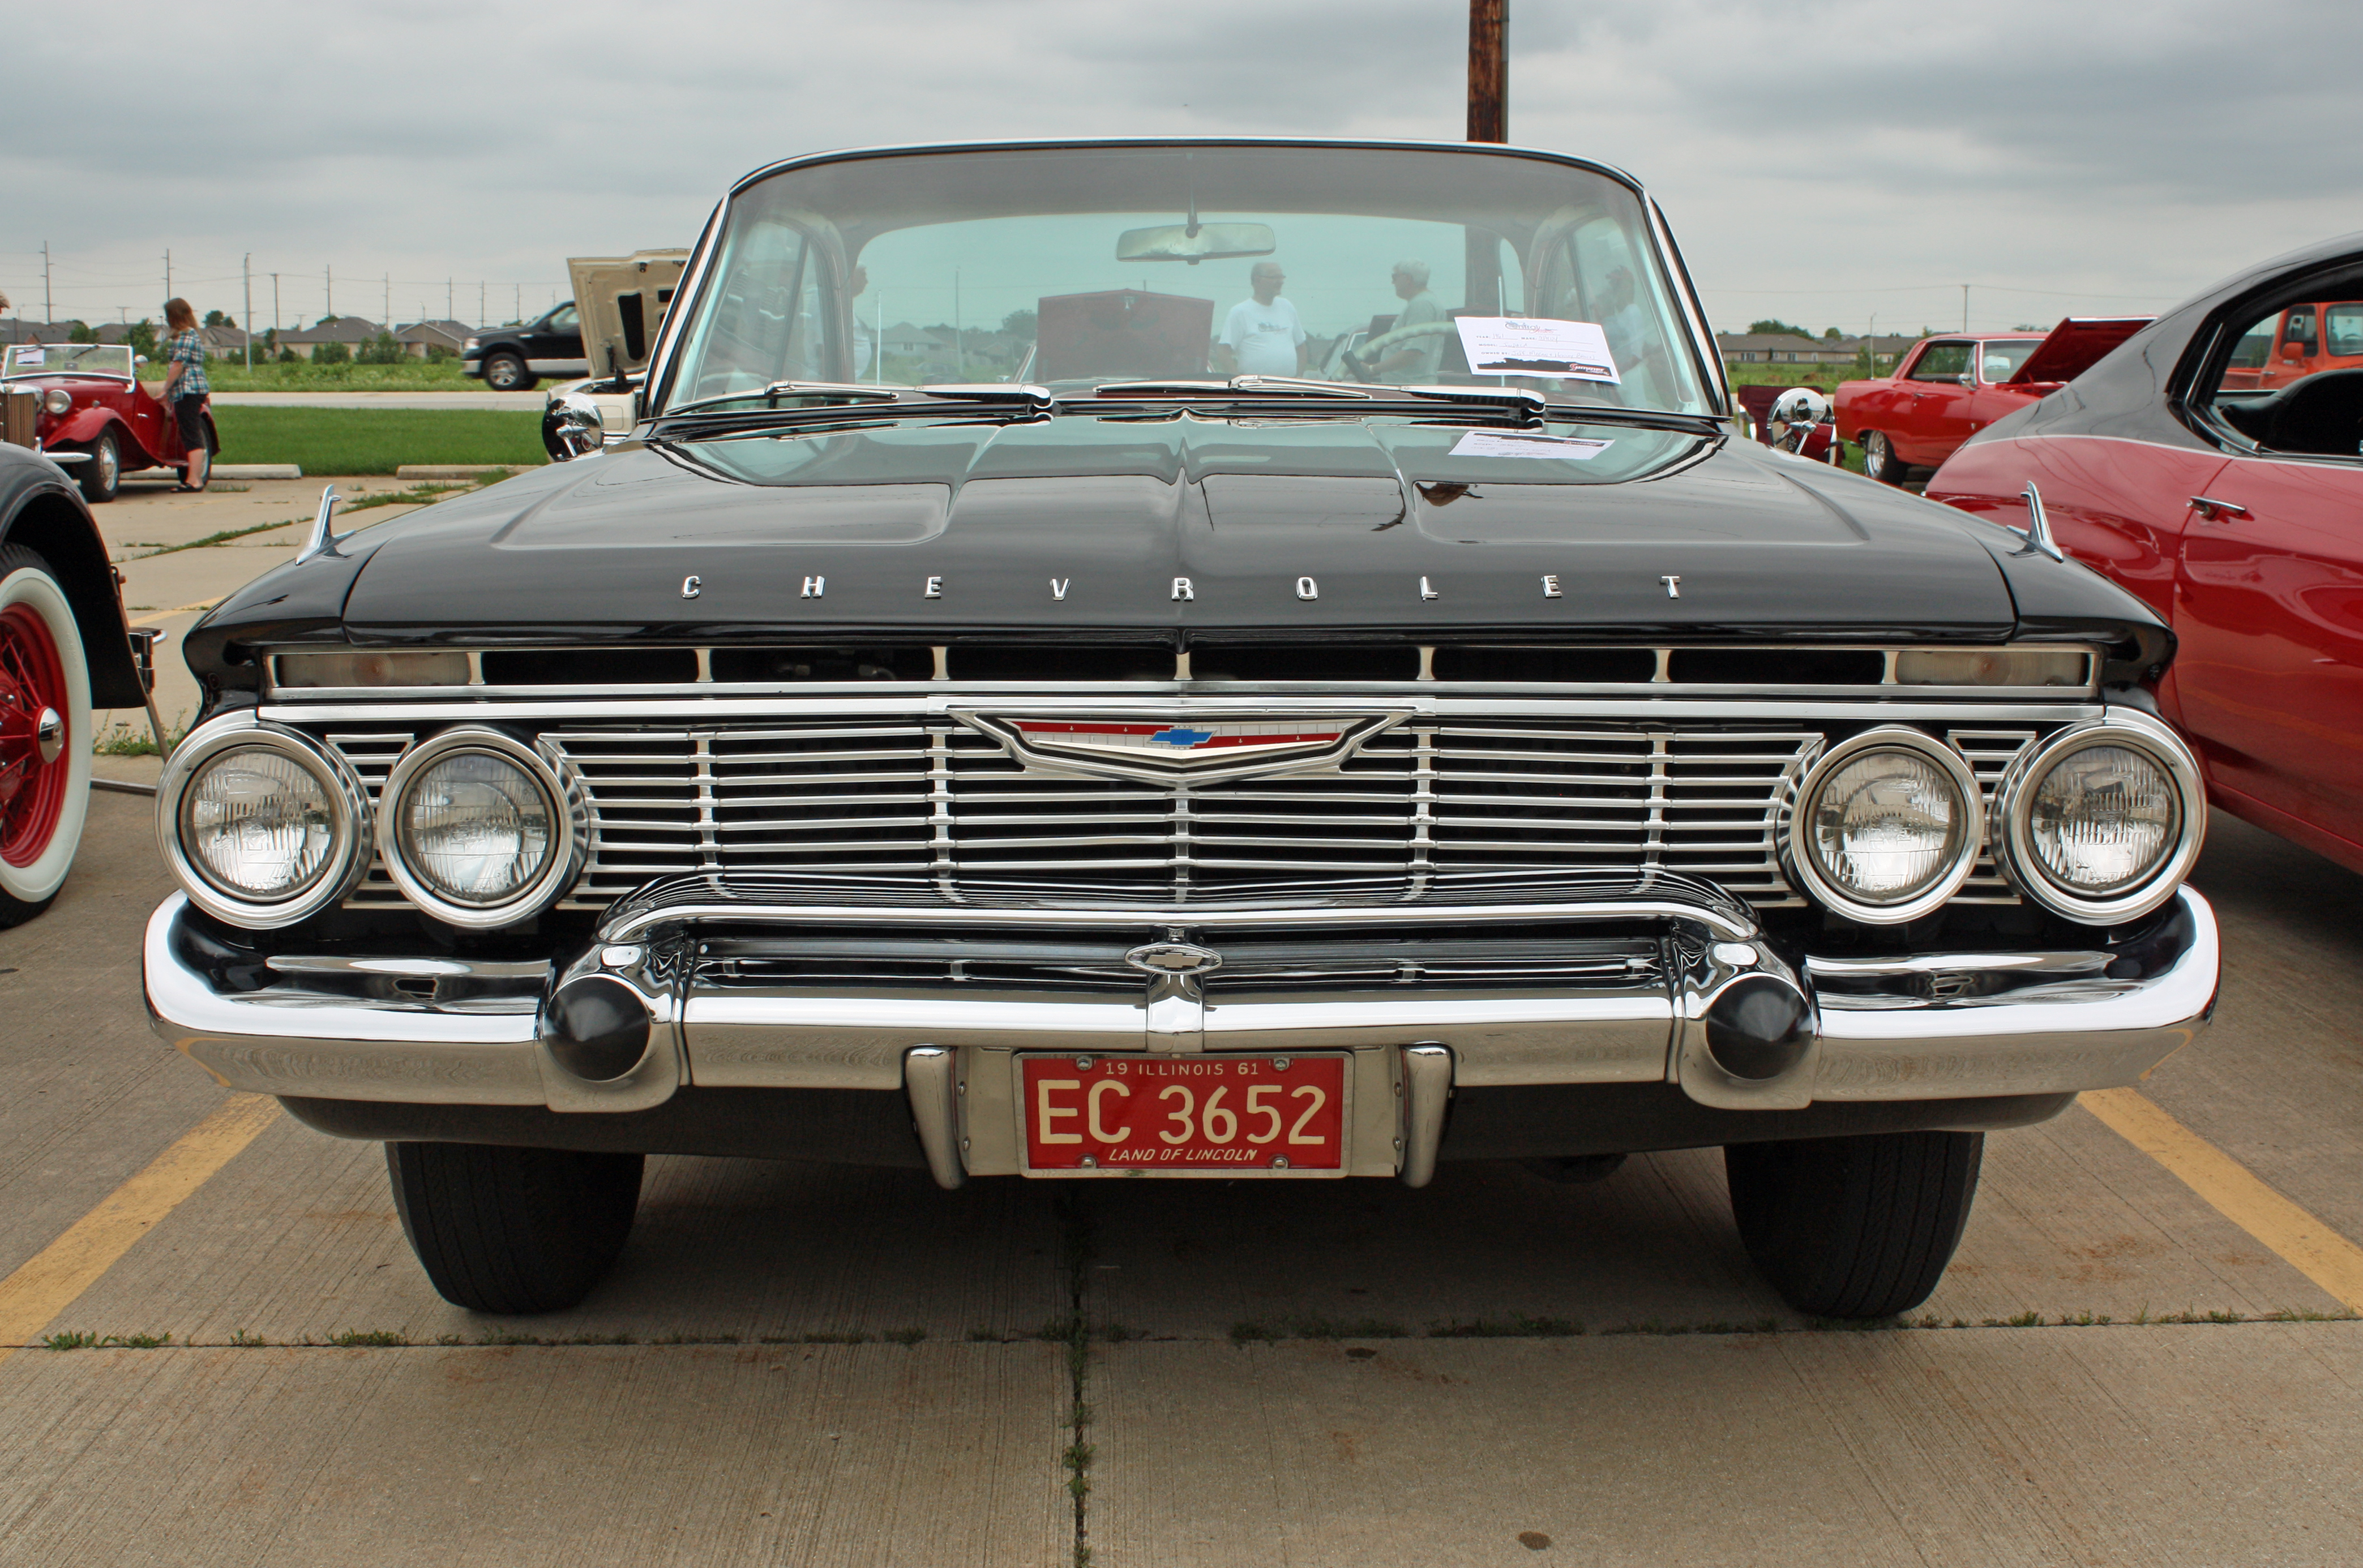 56 chevy nomad wiring diagram  56  free engine image for